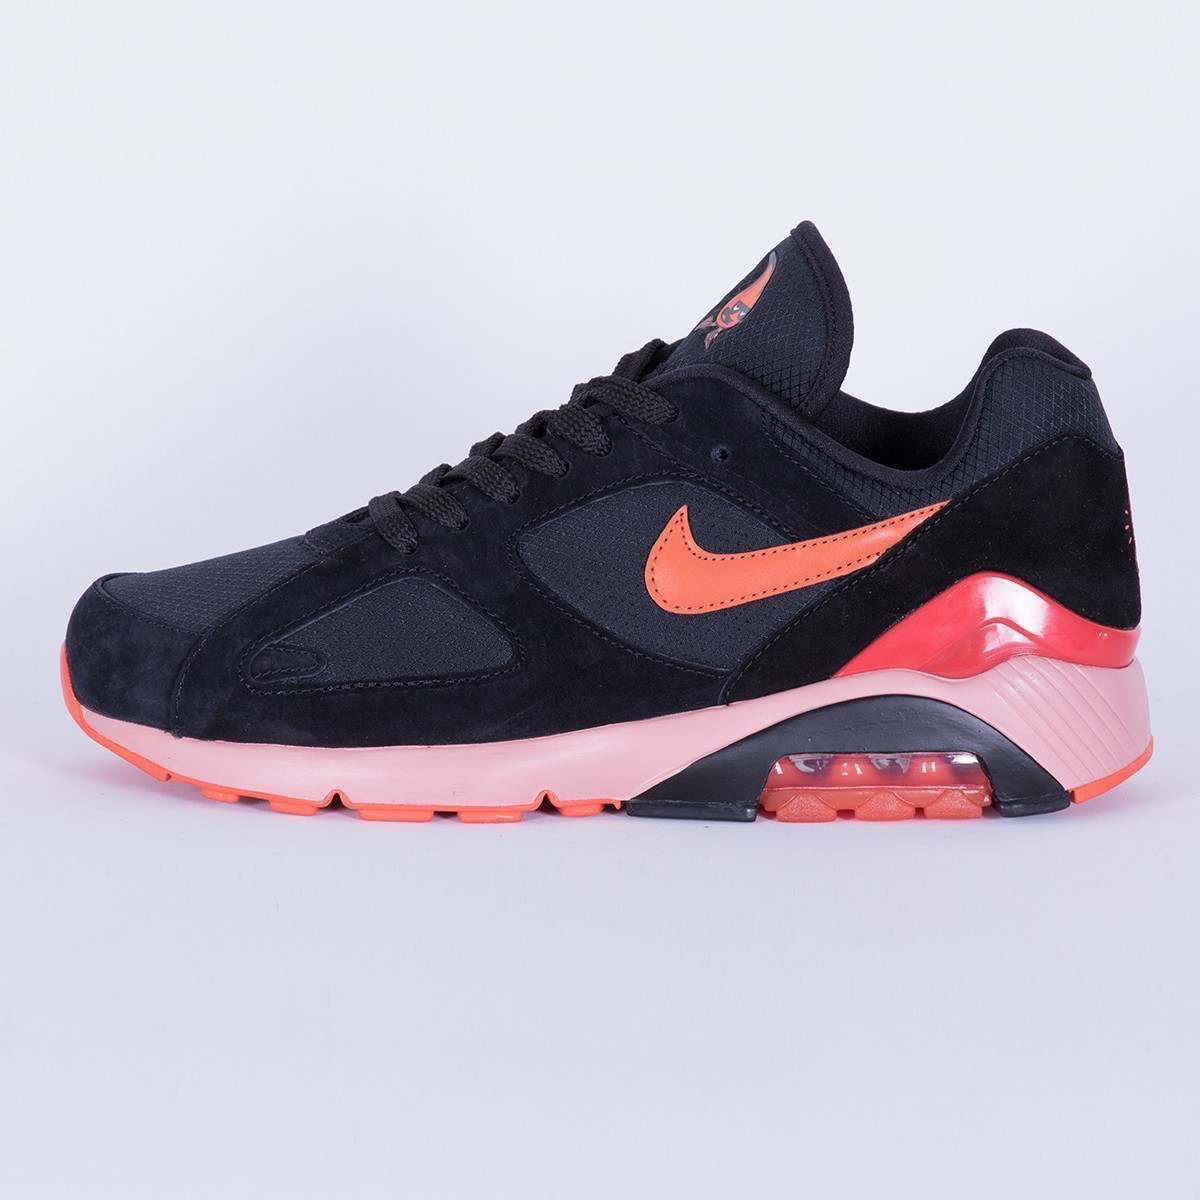 detailed look f27d6 61dac Nike Air Max 180 Fire and Ice Pack, Men s Fashion, Footwear ...